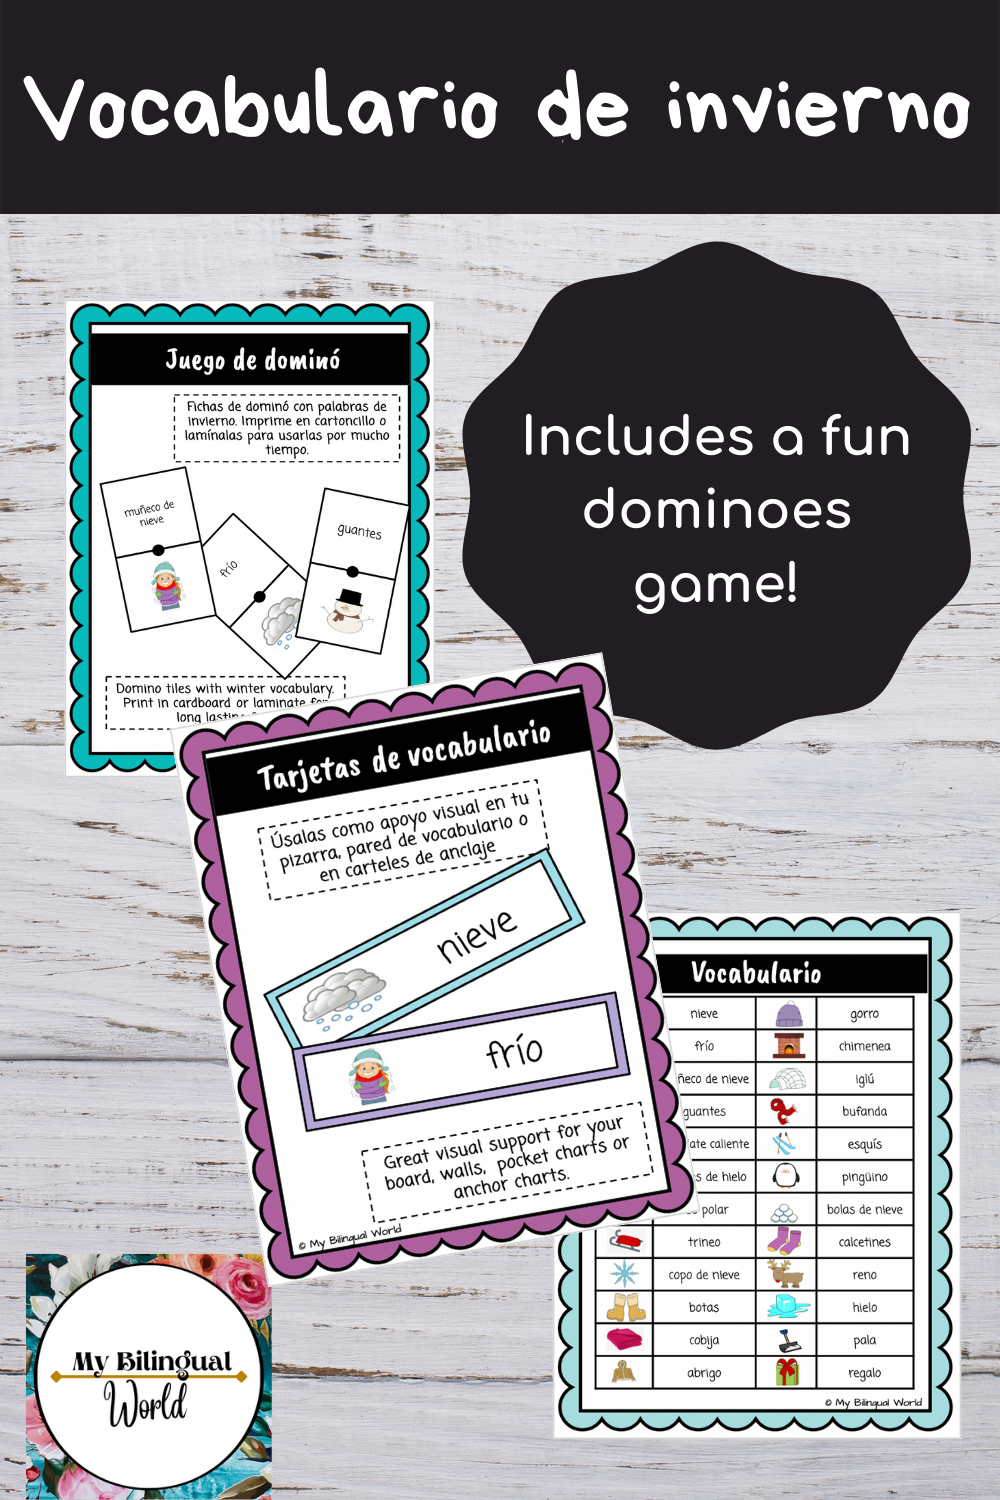 This great resource is a fun way for your students to increase and practice their Spanish vocabulary. It includes flashcards with the word and picture, a list of all the words with picture and 24 dominoes tiles! Your students will love this game!